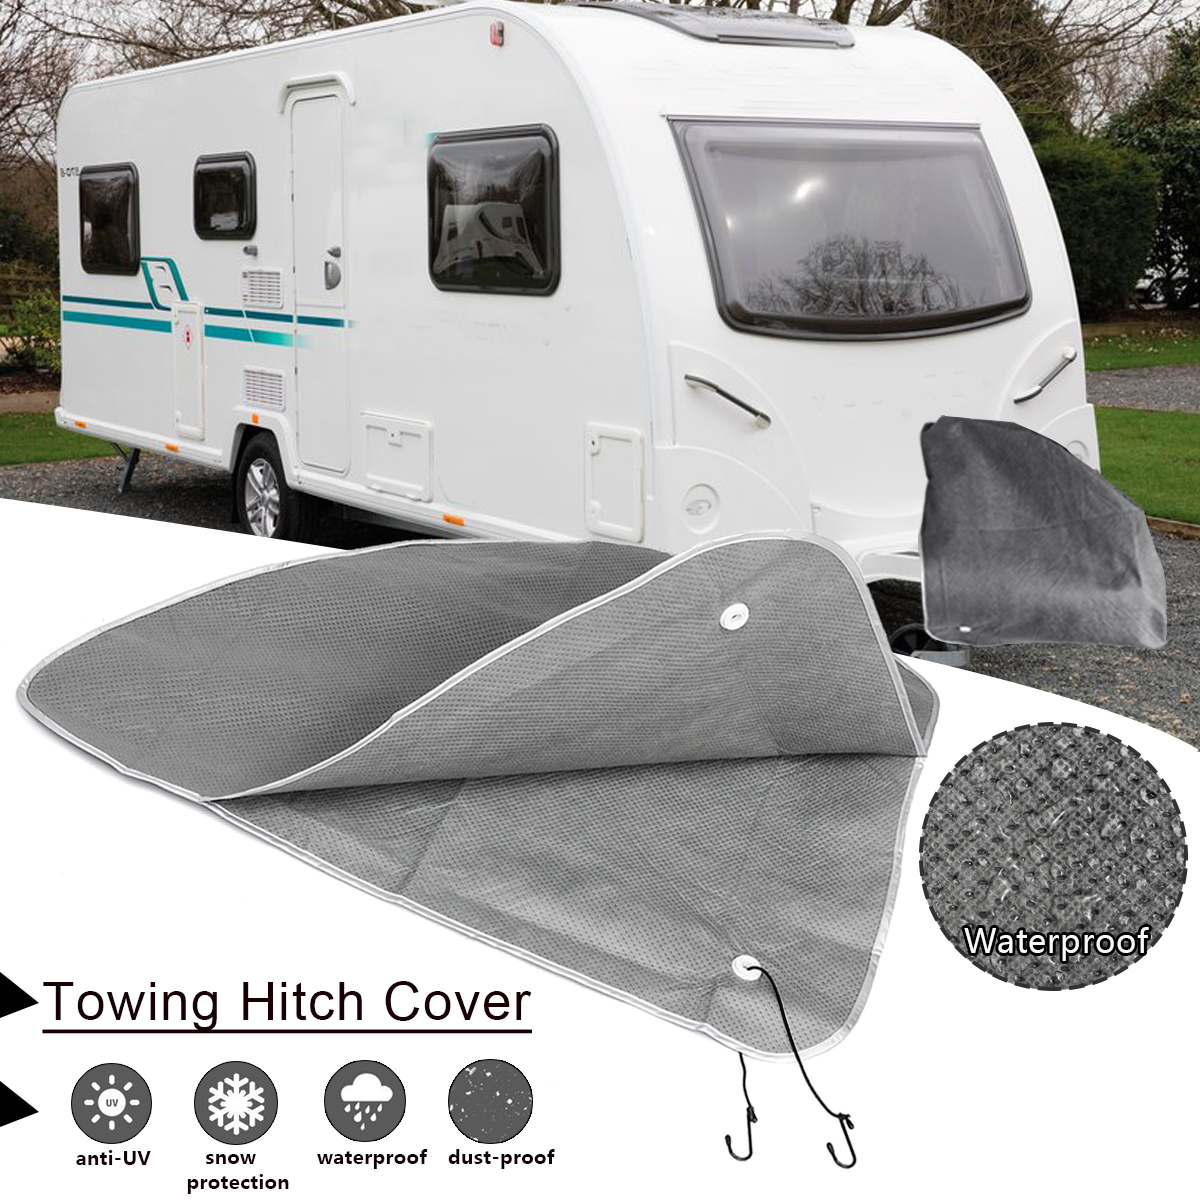 Universal Caravan Towing Hitch Coupling Lock Cover Waterproof Dustproof for RV Truck Trailer